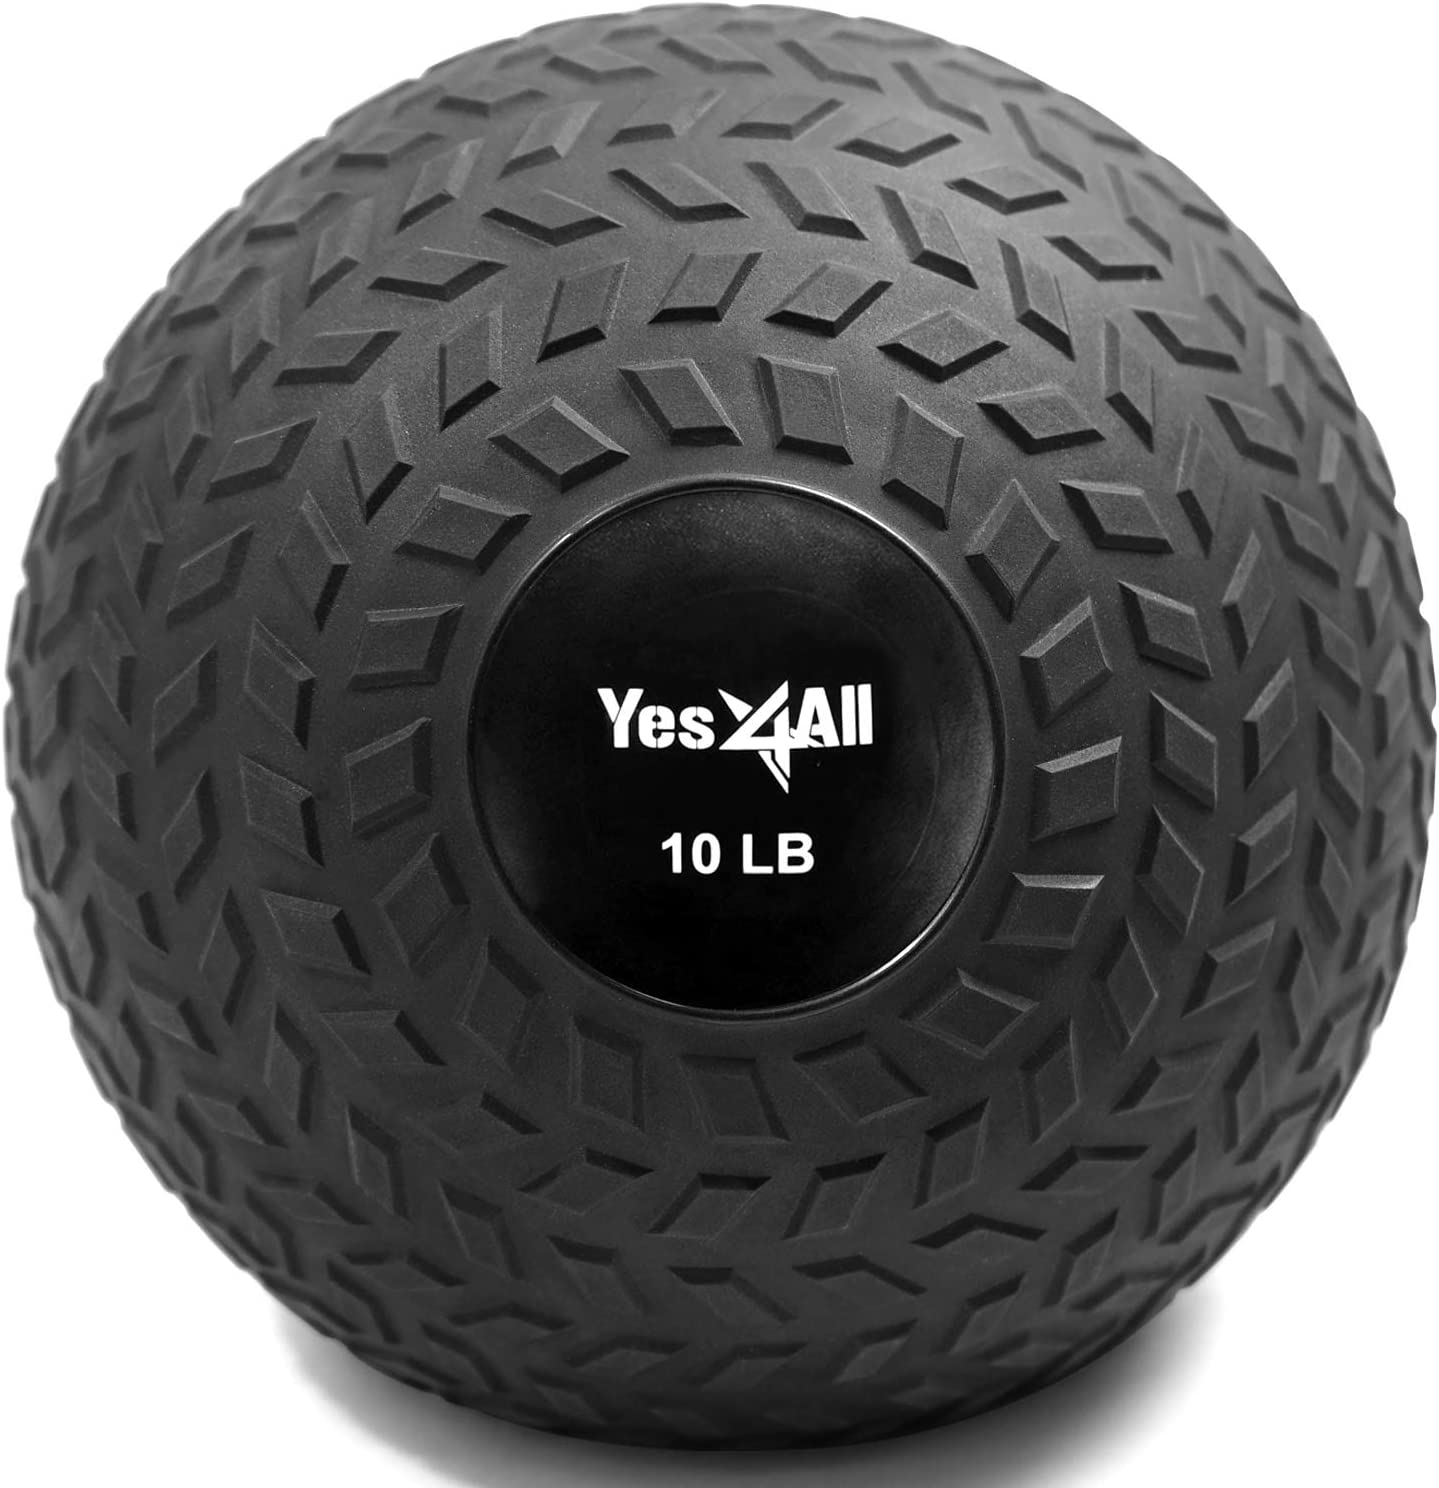 Yes4All Slam Balls (black & blue) 10-40lbs for Strength and Crossfit Workout – Slam Medicine Ball